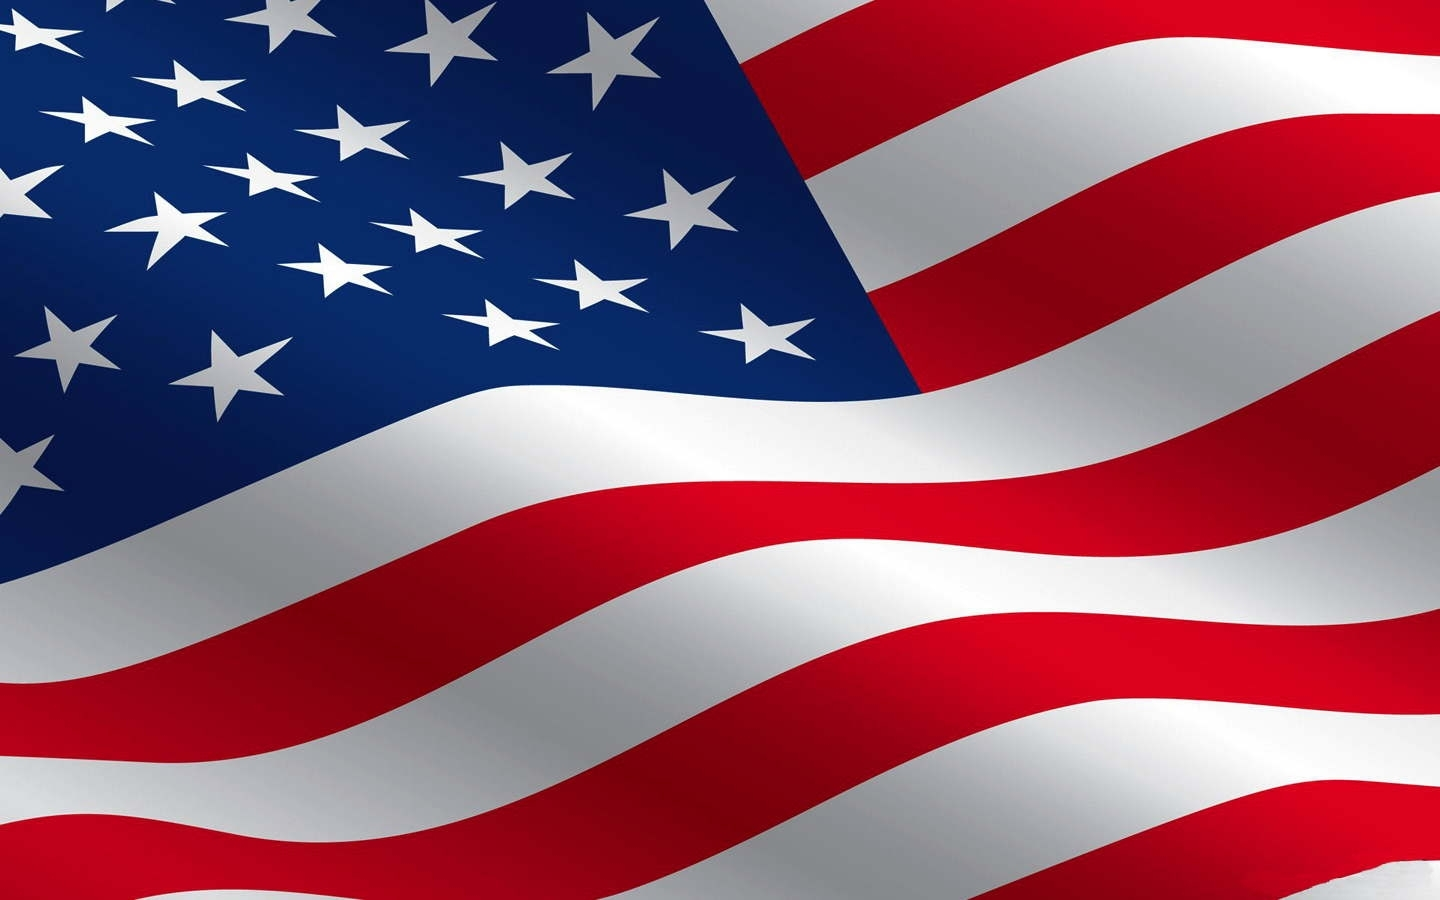 american flag hd background wallpaper free